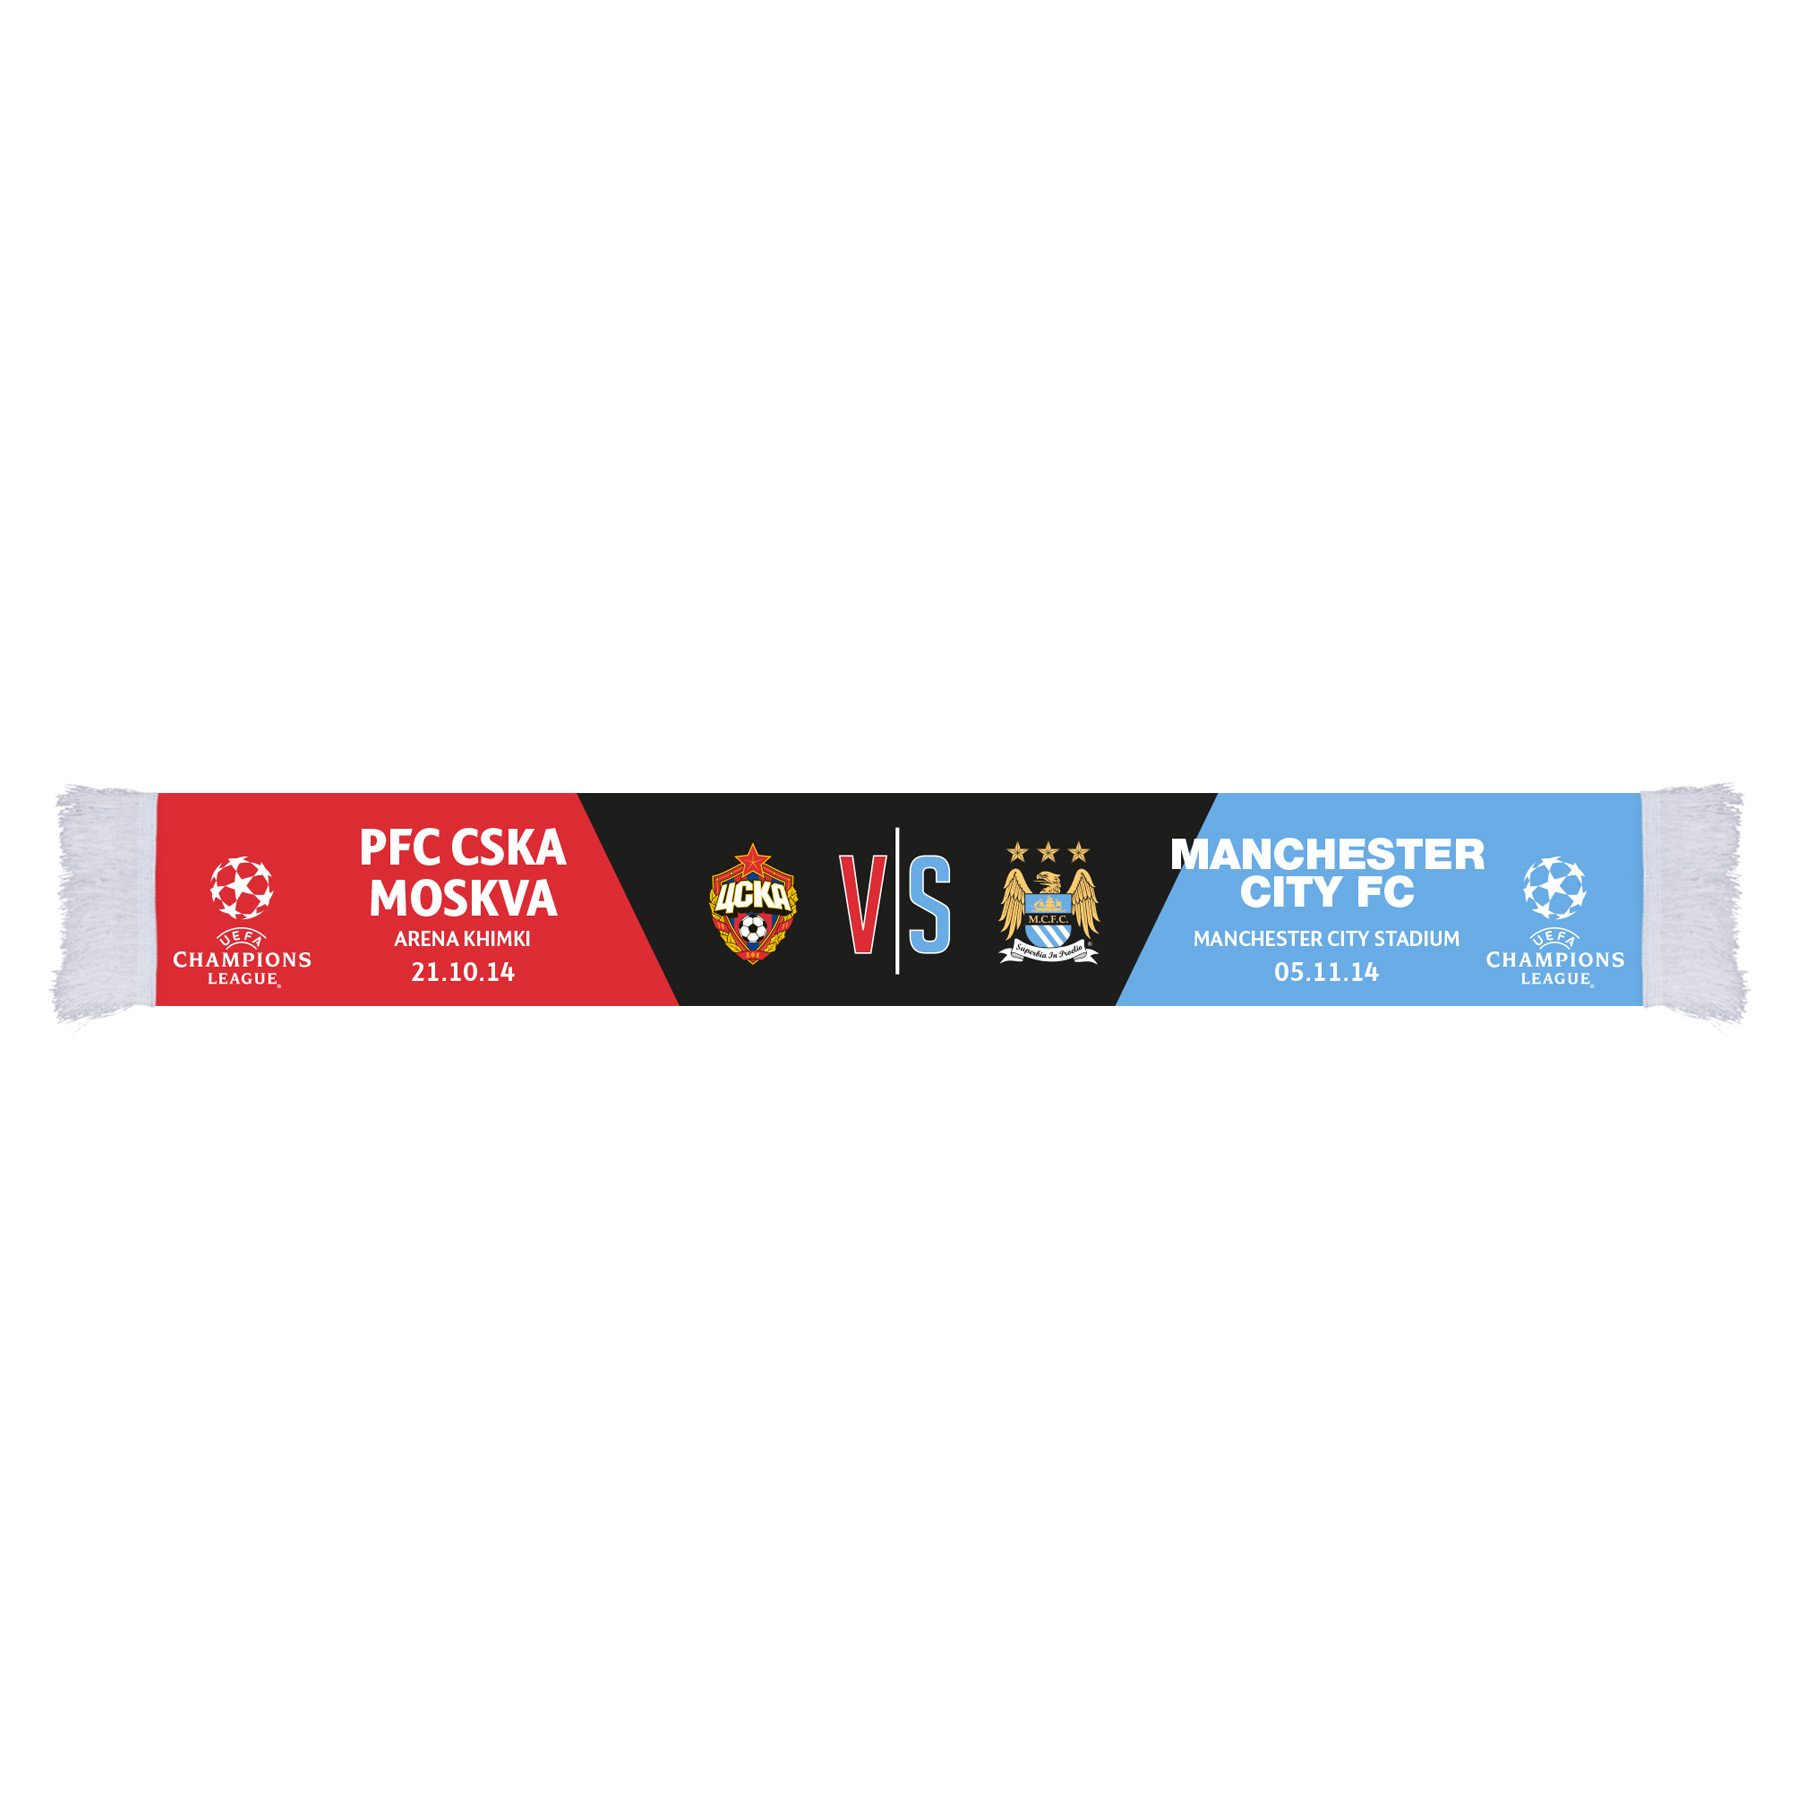 Manchester City UCL Pfc Cska Moskva Friendship Scarf - Multi - Adult